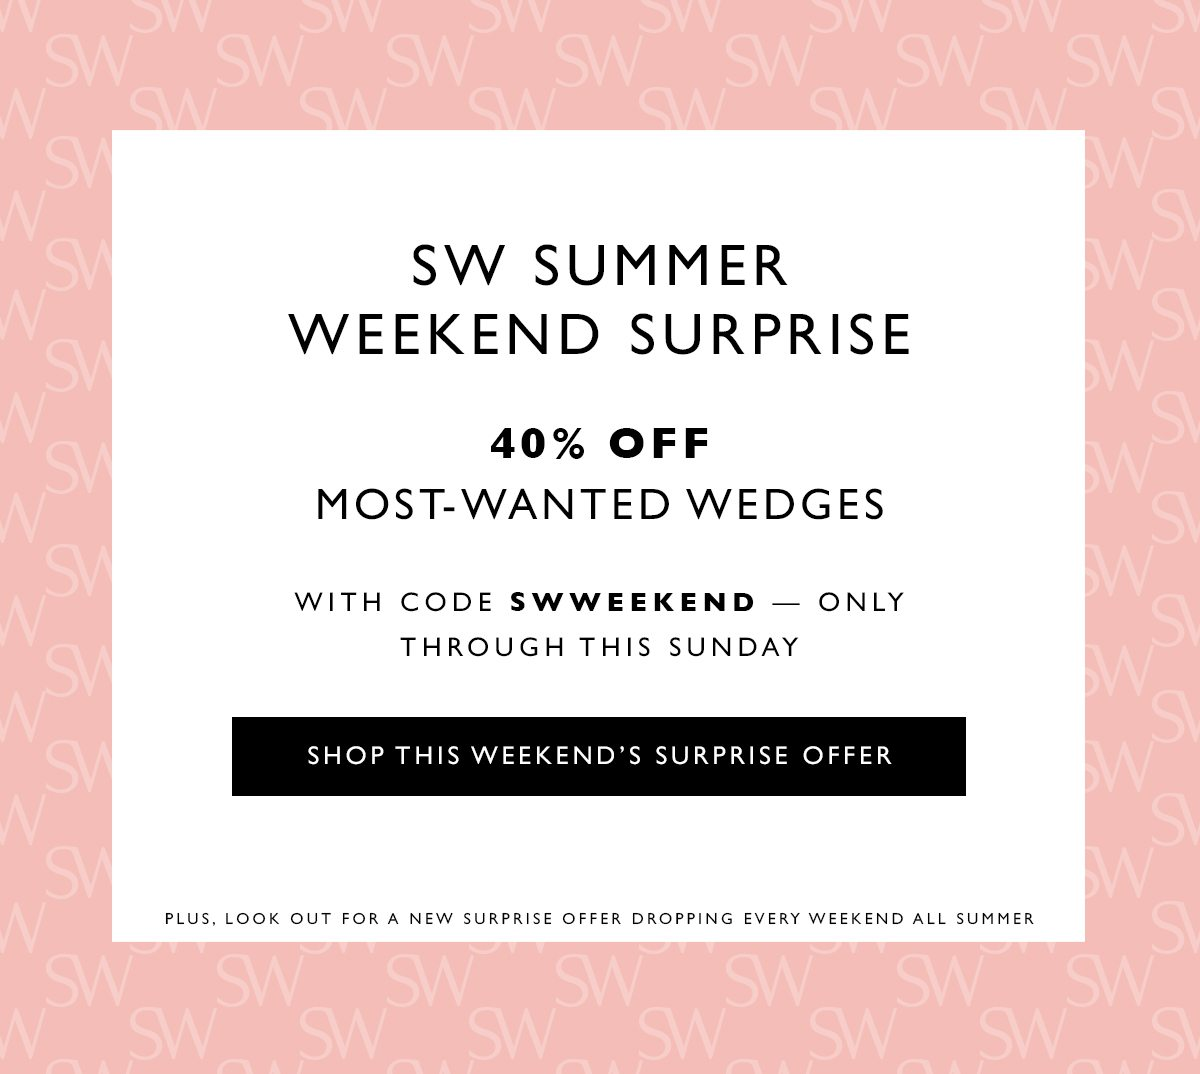 SW Summer Weekend Surprise. Last-chance style essentials starting at $140 — this weekend only. SHOP THIS WEEKEND'S SURPRISE OFFER